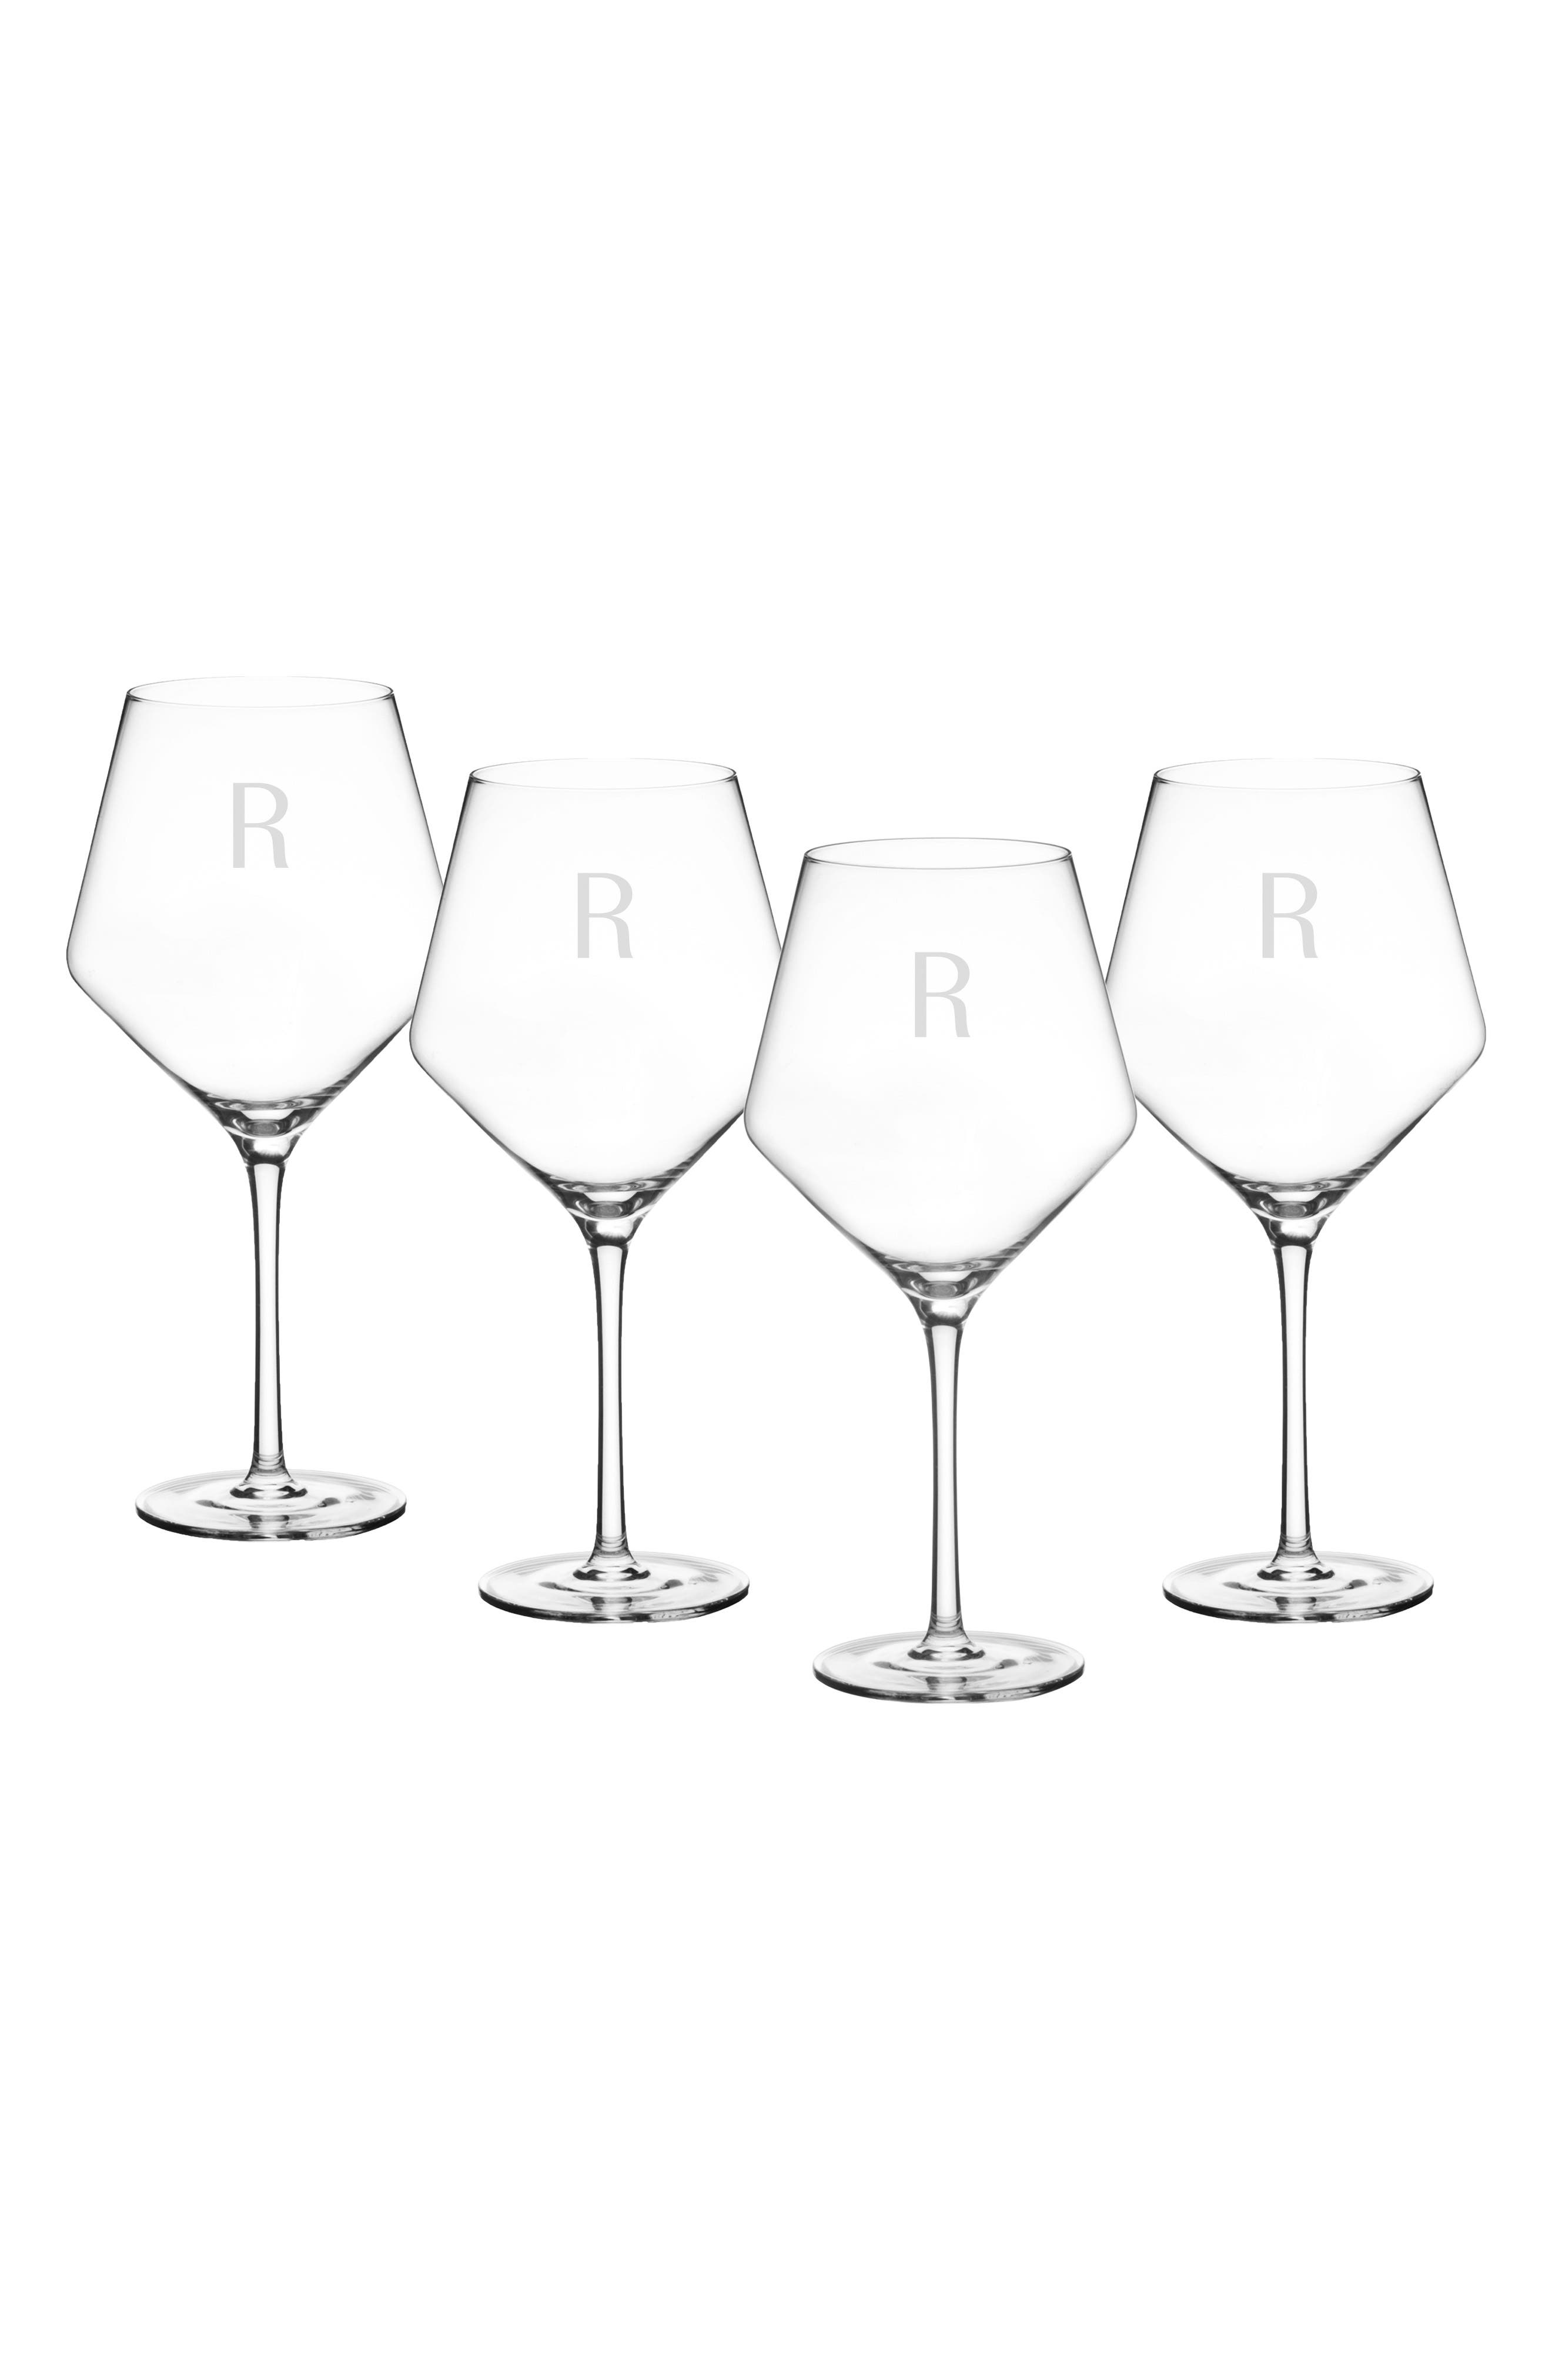 Estate Collection Set of 4 Monogram Red Wine Glasses,                             Alternate thumbnail 2, color,                             BLANK